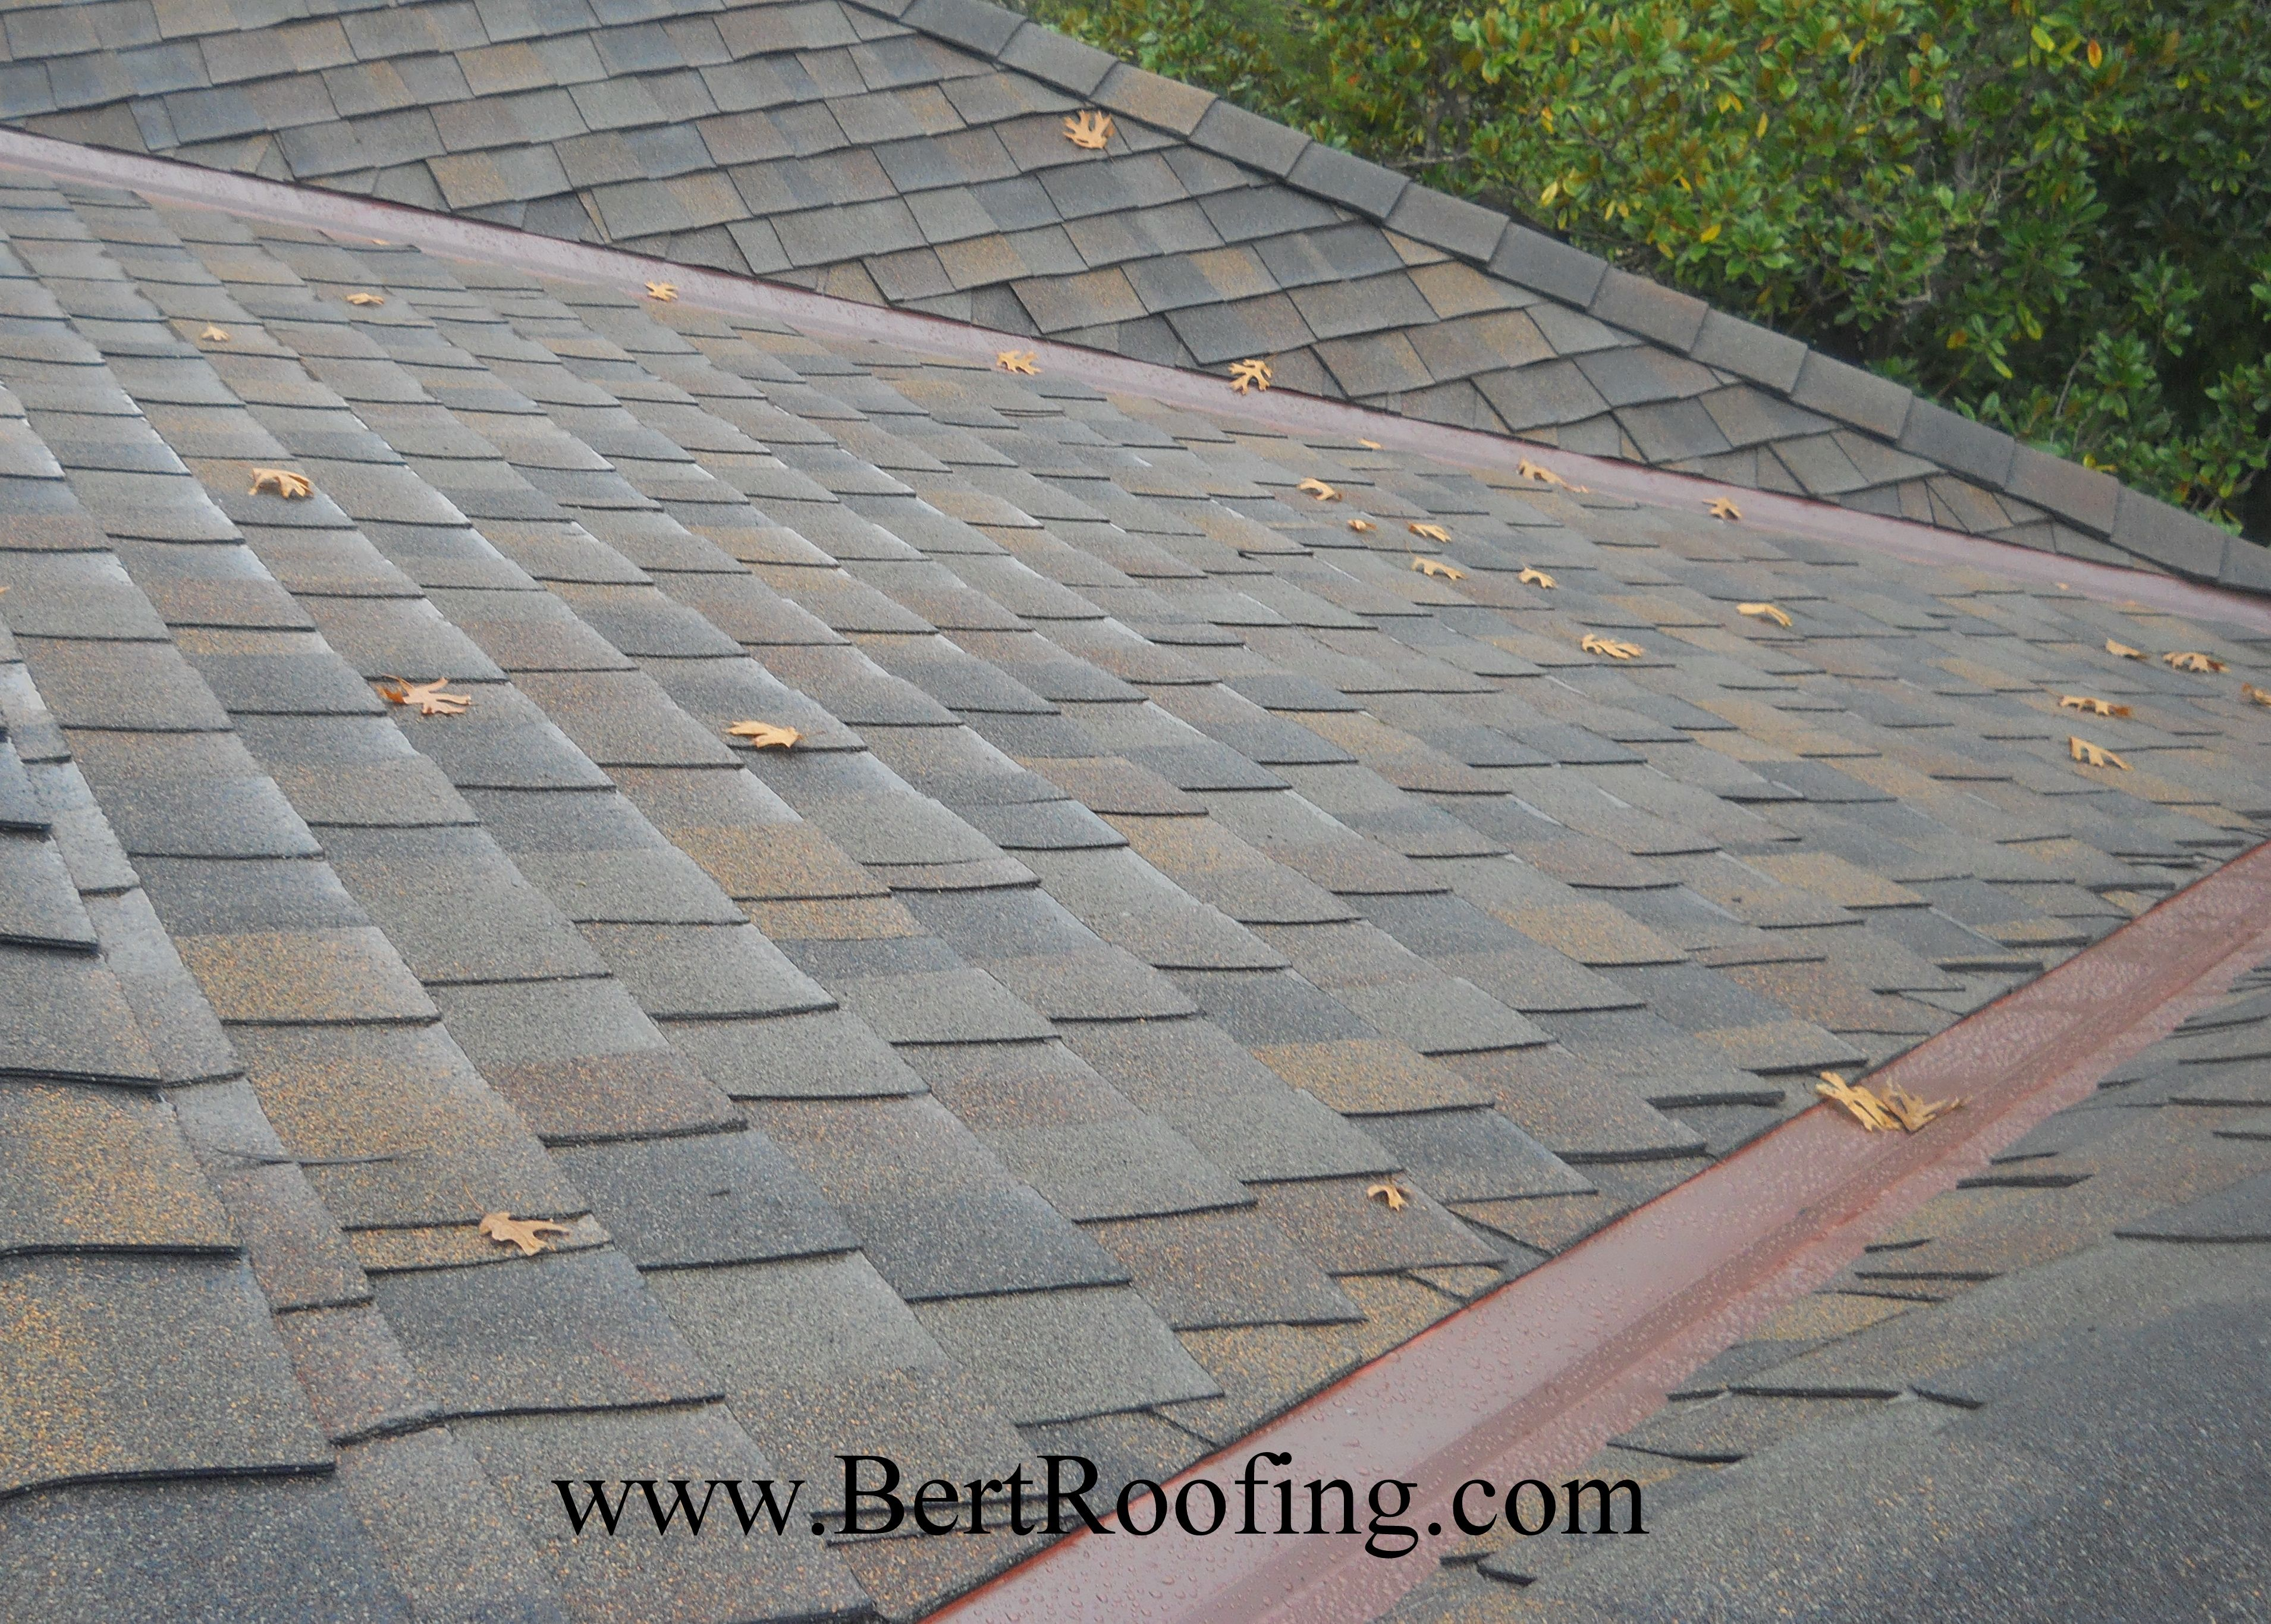 Dallas Roofing Company Bert Roofing Dallas Roofing Contractor Roof Repair Composition Shingles Certainteed Traditional Exterior